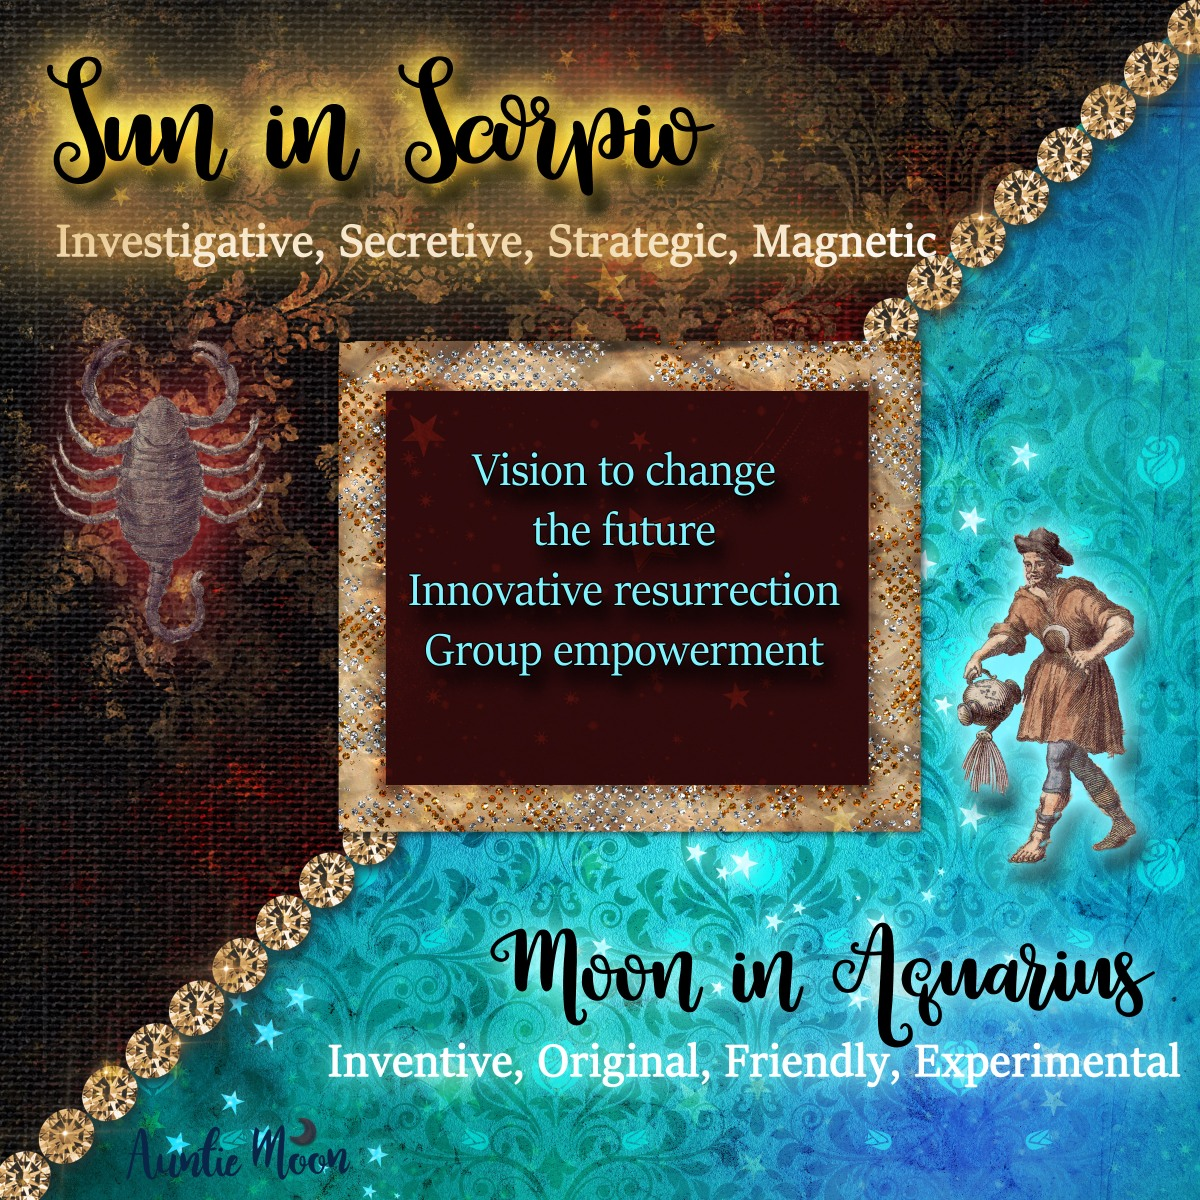 Sun in Scorpio ~ Moon in Aquarius